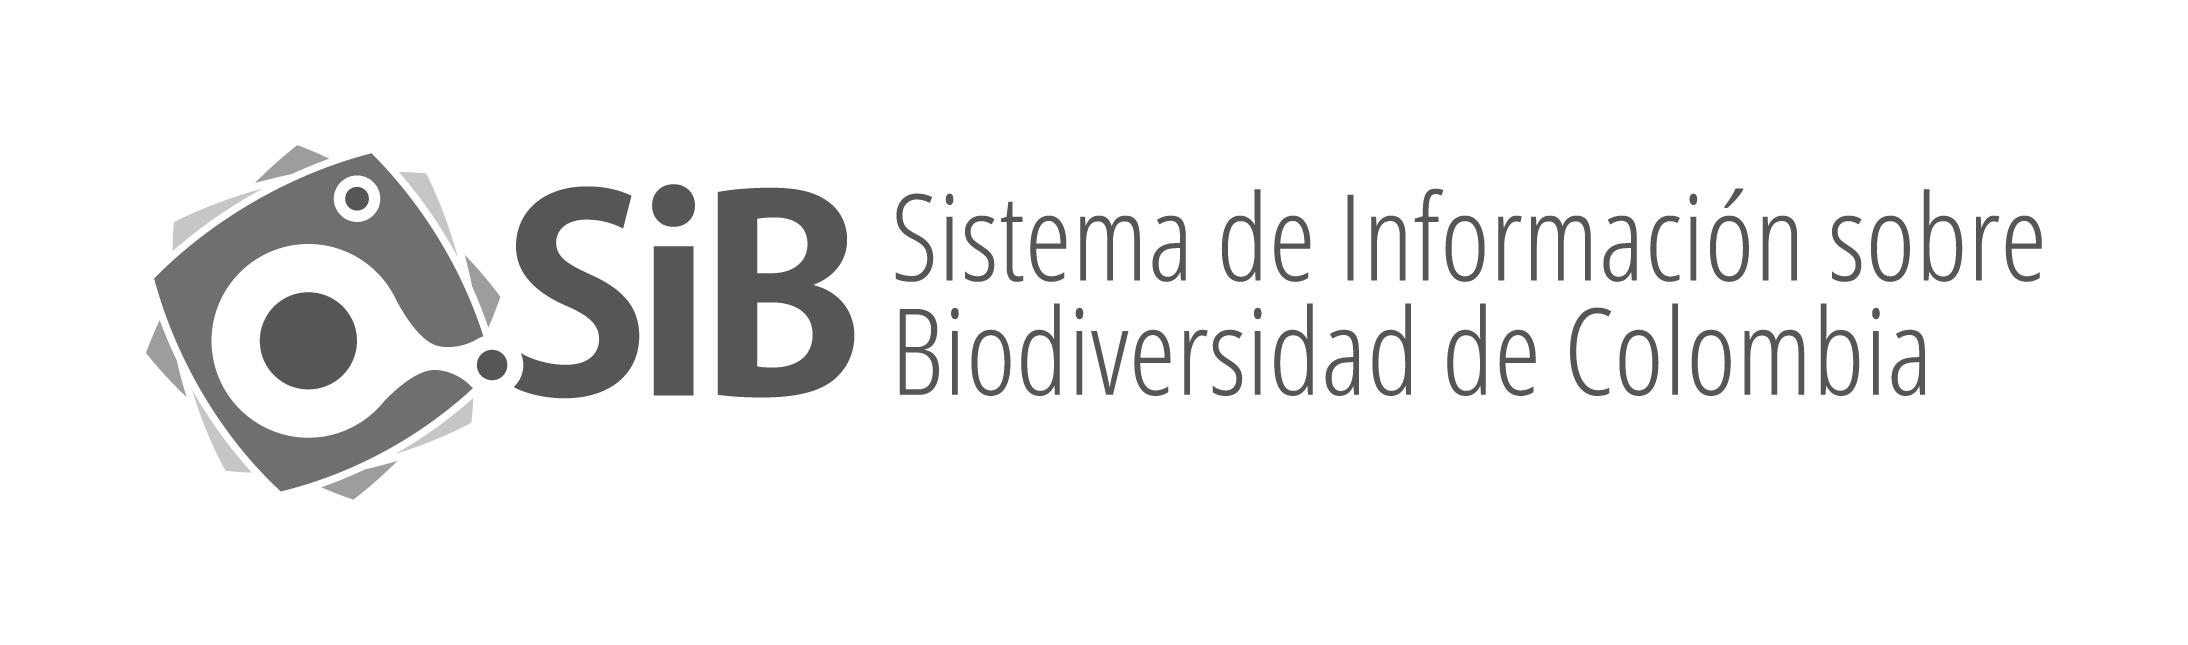 sib-colombia-20